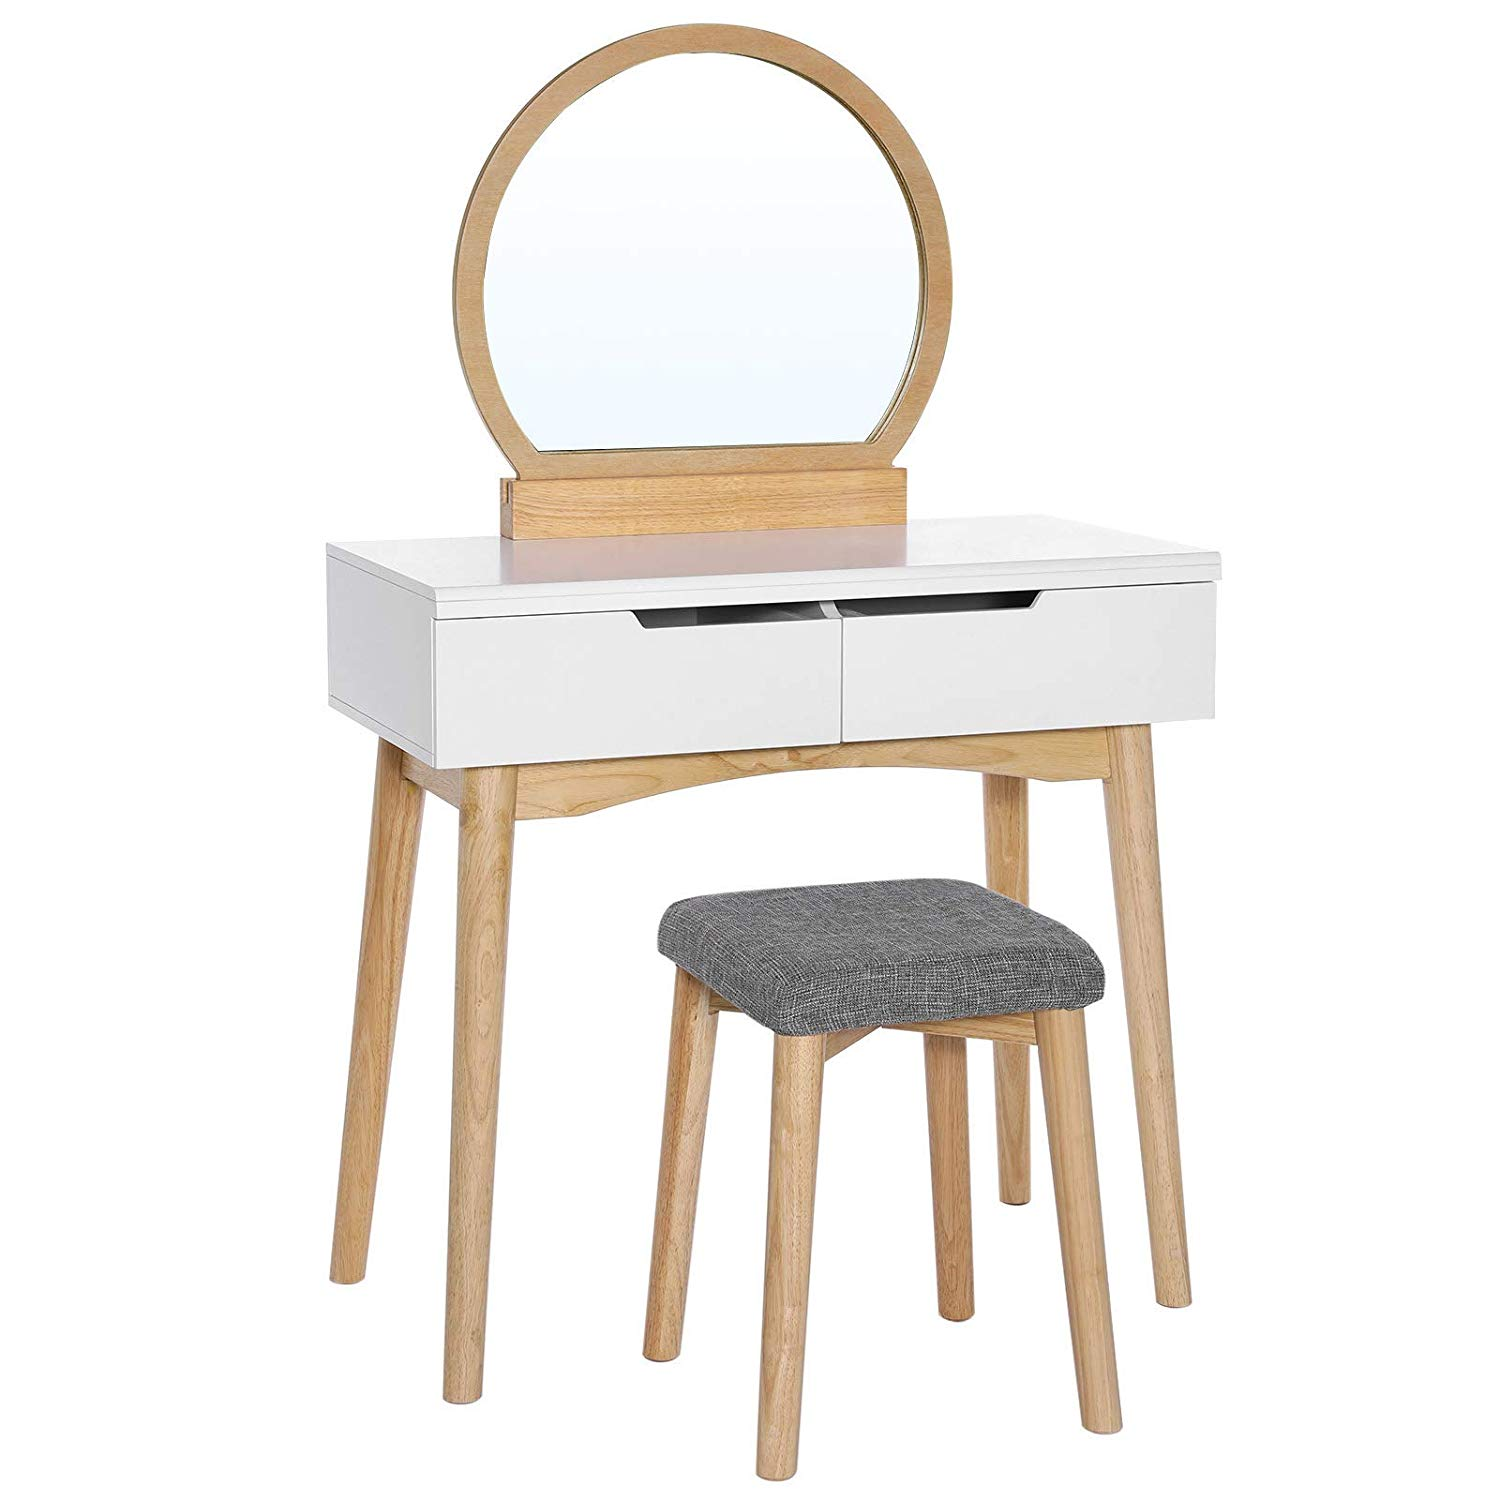 Wooden Vanity Set with 2 Drawers and Round Mirror, White and Brown